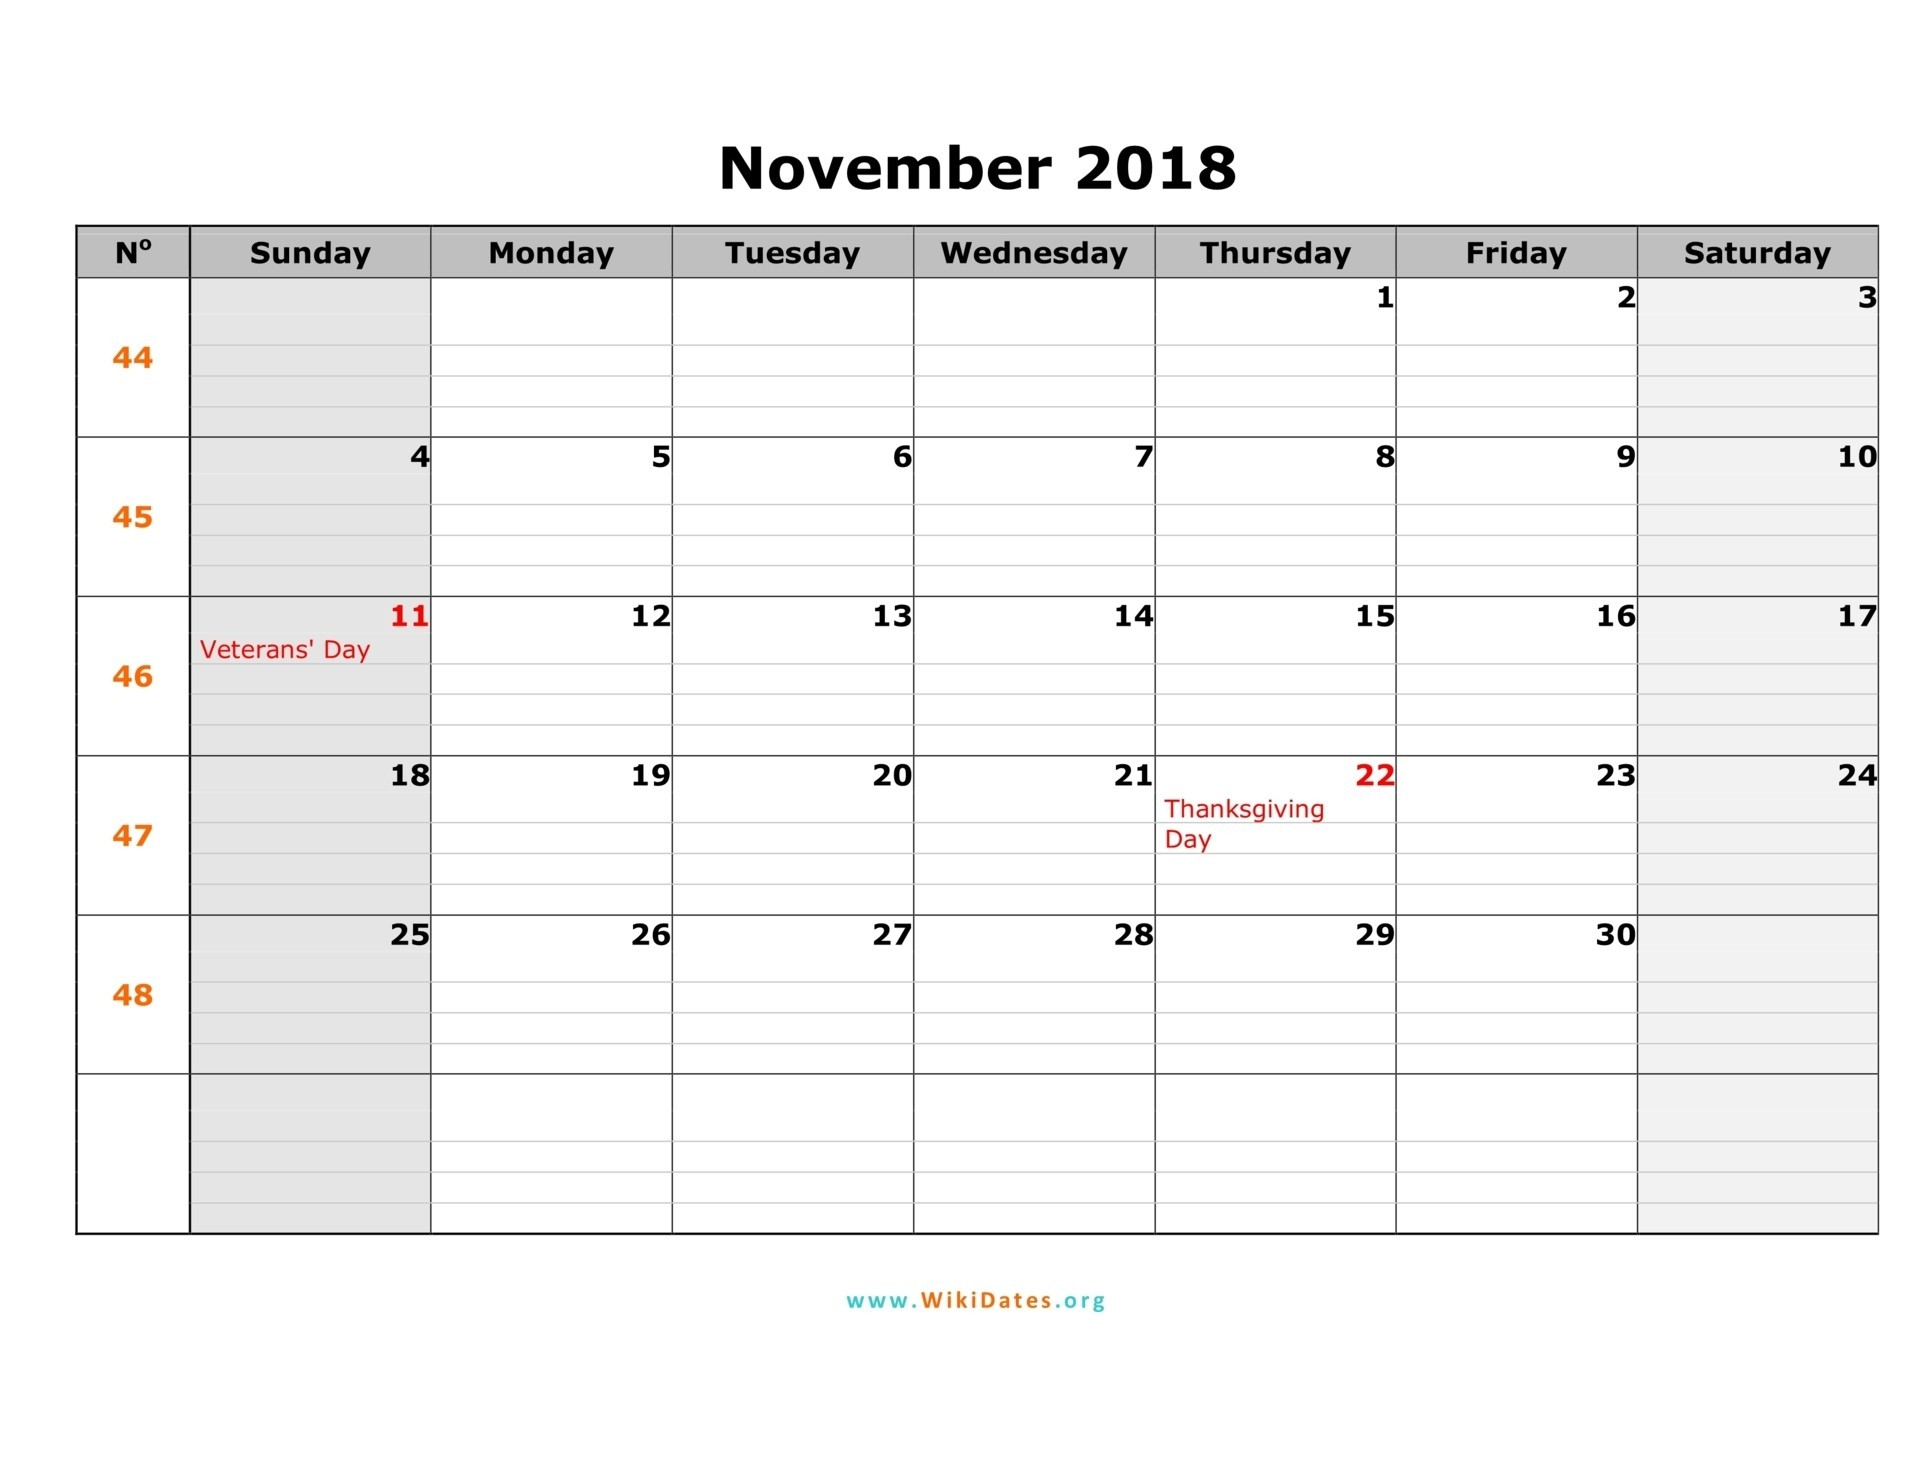 Calendario Febrero 2018 Editable Más Recientes Calendar Deals Uk November February 2018 Calendar Printable Of Calendario Febrero 2018 Editable Recientes Printable 2018 Calendar Que Blank